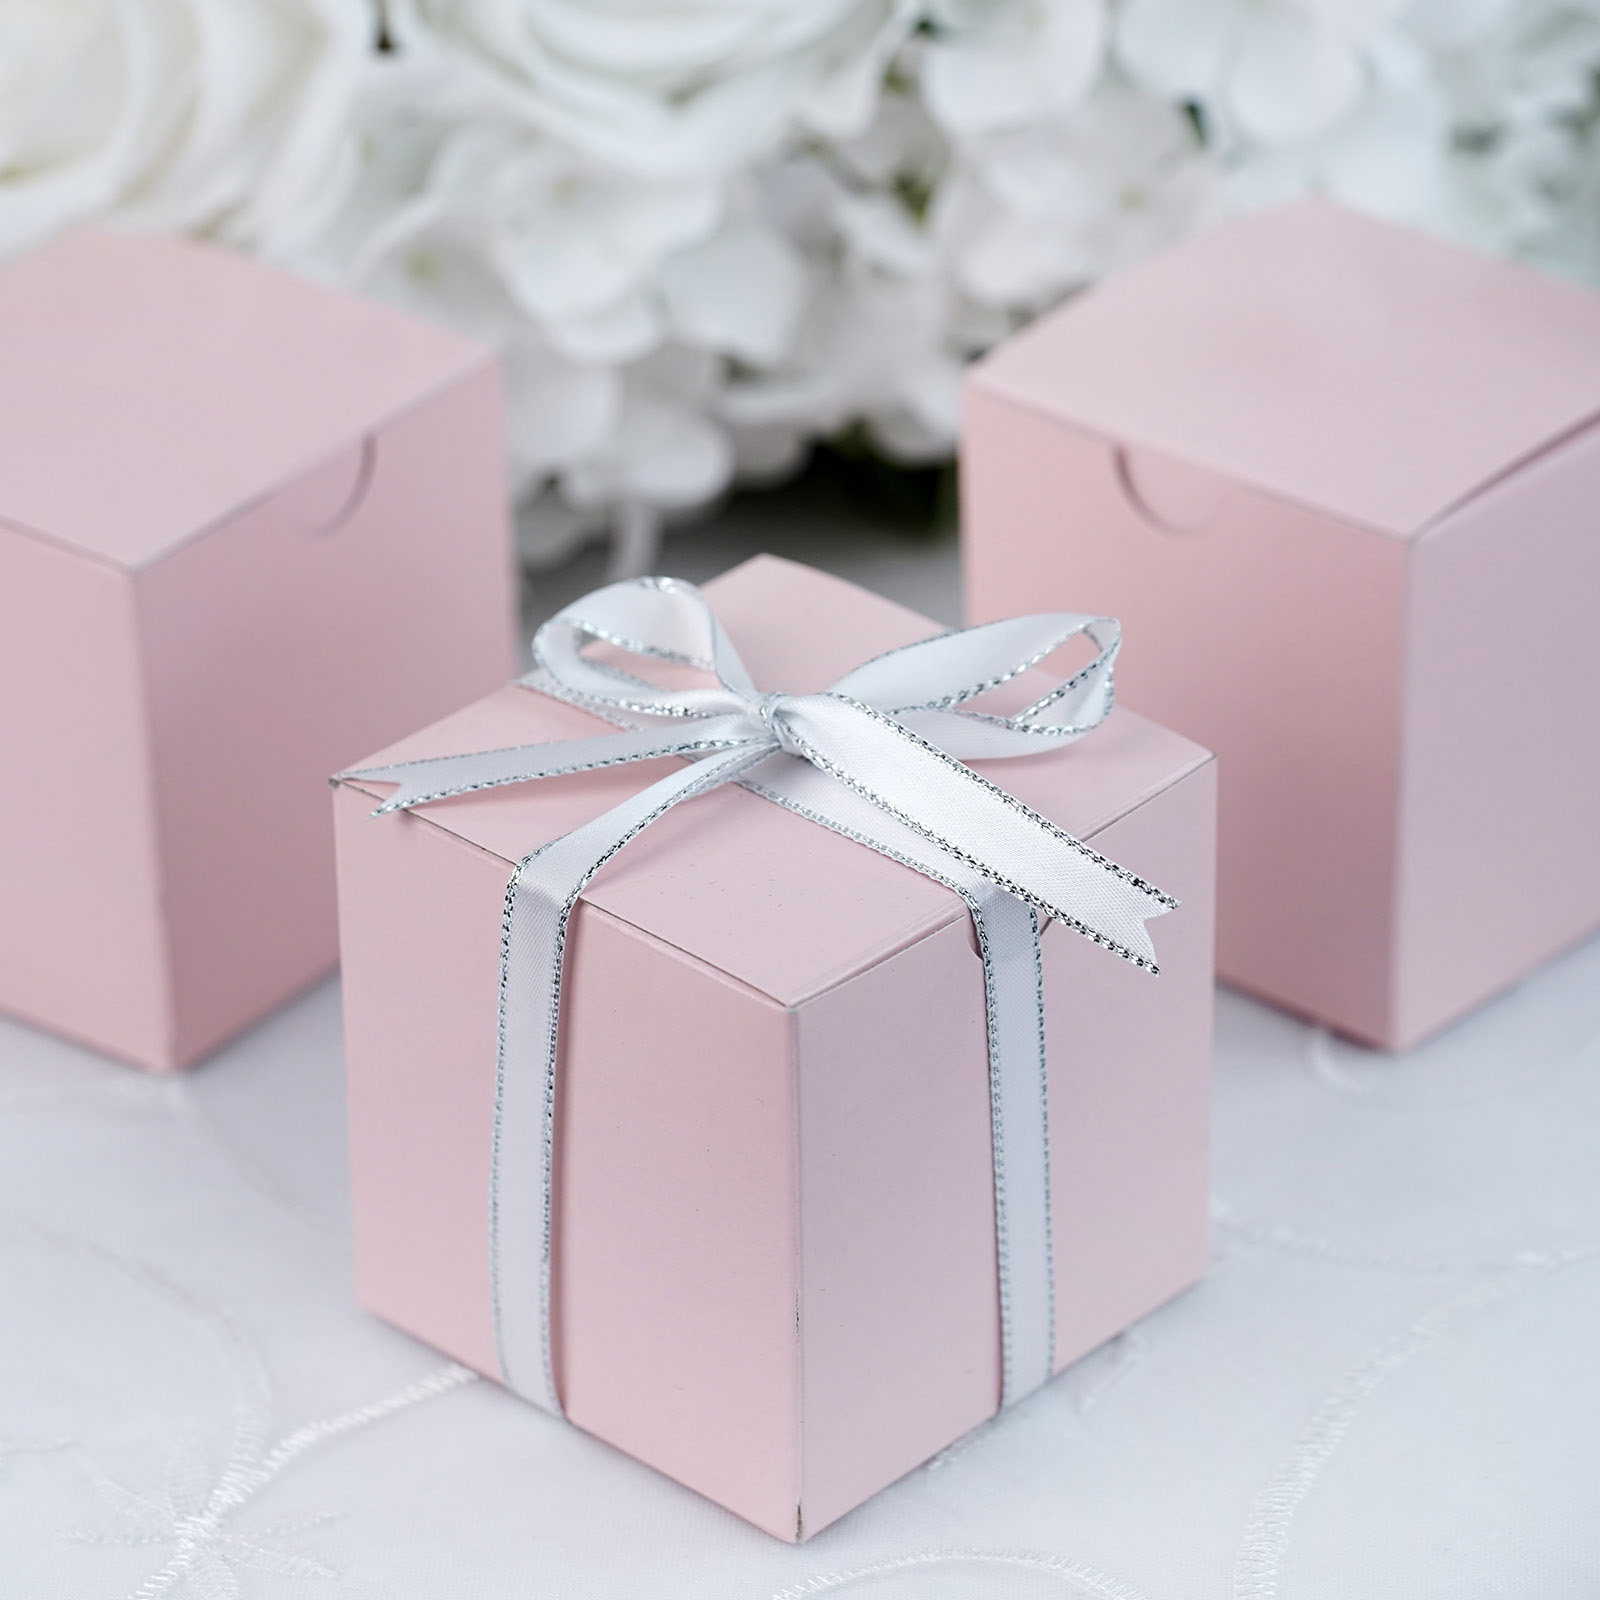 400 Pcs 3x3x3 Inches Wedding Favor Gift Boxes Party Wholesale Free